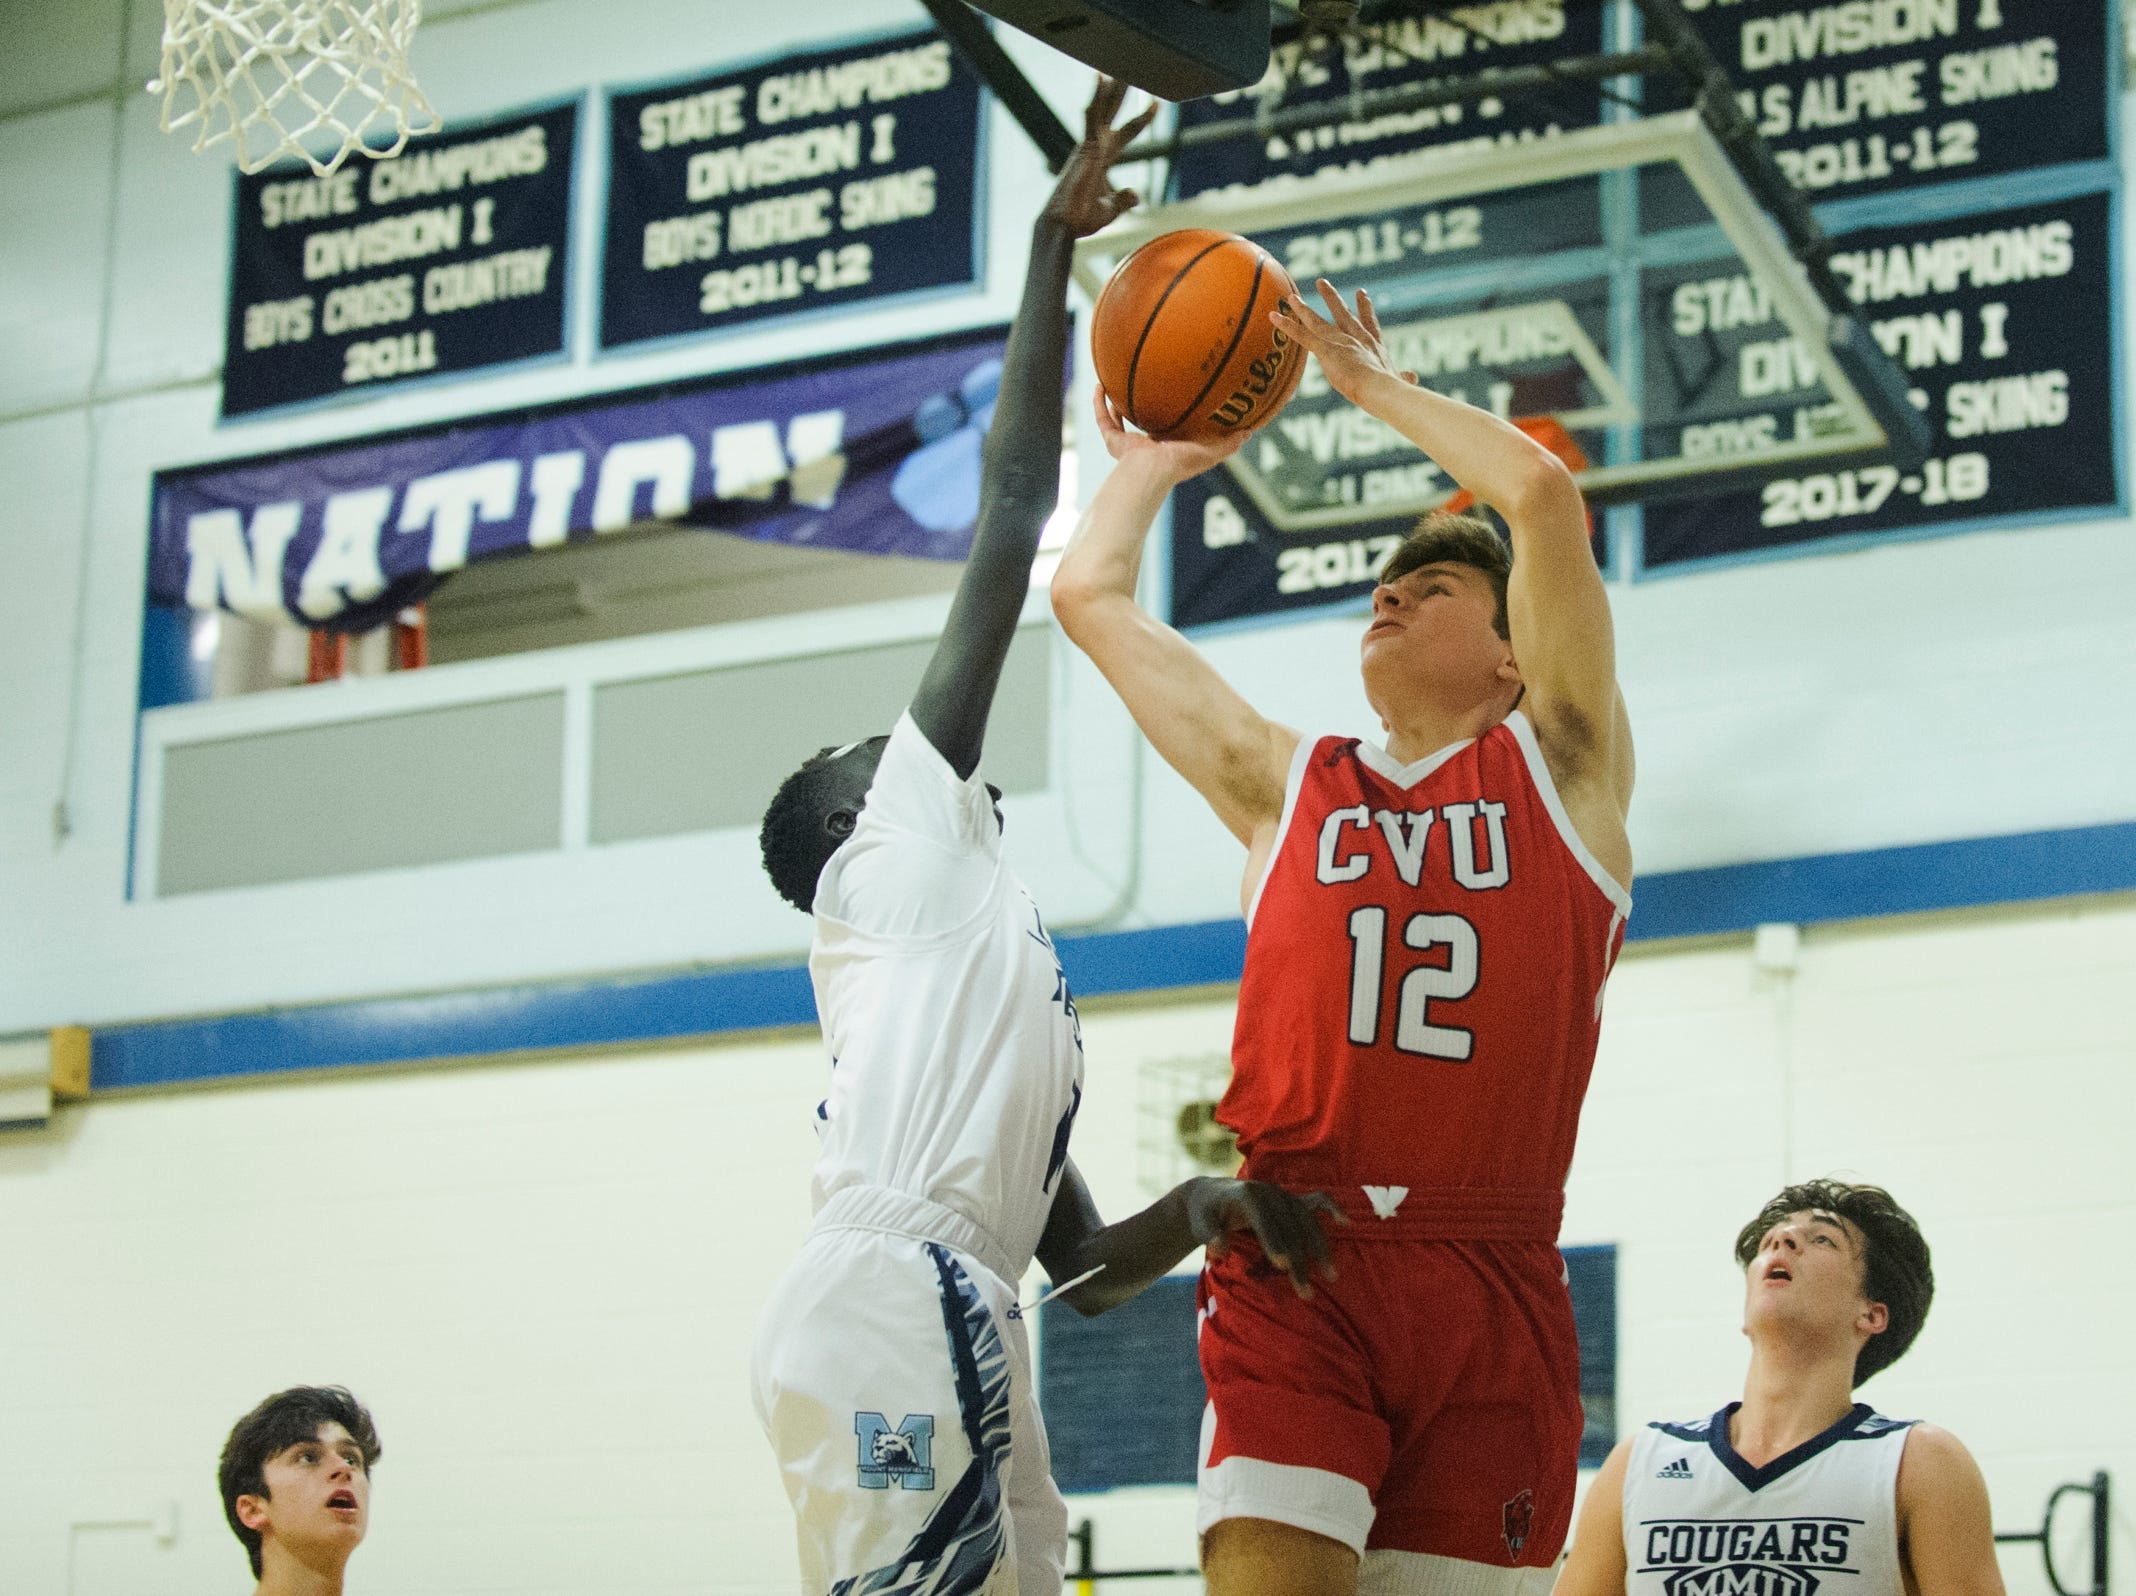 CVU's Alden Randall's (12) shot is blocked by MMU's Taylor Bowen (11)  during the boys basketball game between the Champlain Valley Union Redhawks and the Mount Mansfield Cougars at MMU High School on Tuesday night January 22, 2019 in Jericho.